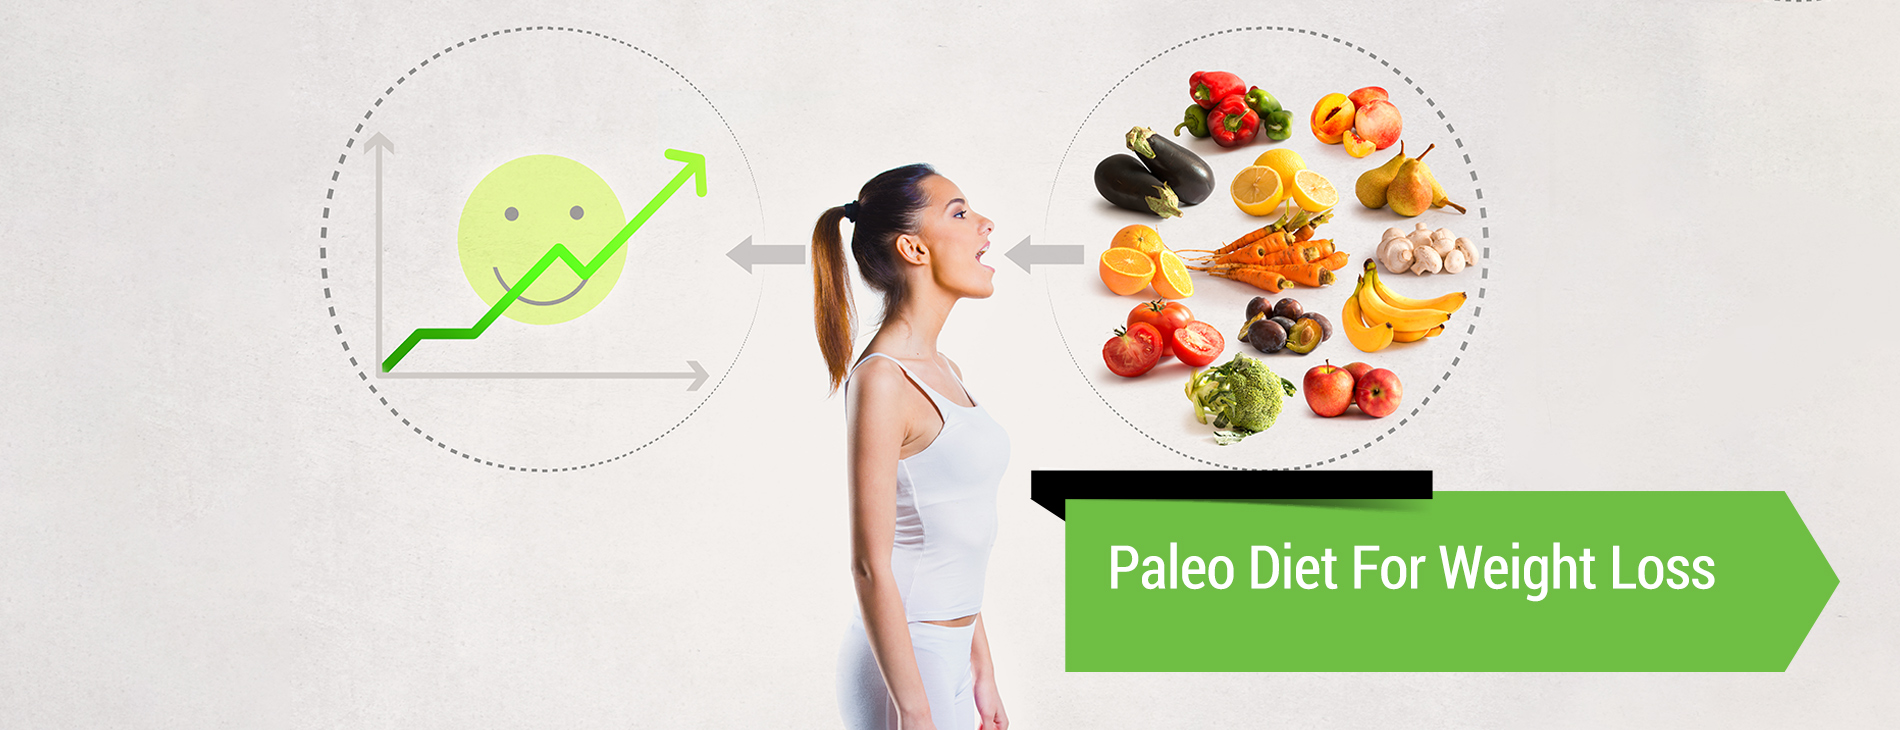 Paleo-Diet-For-Weight-Loss